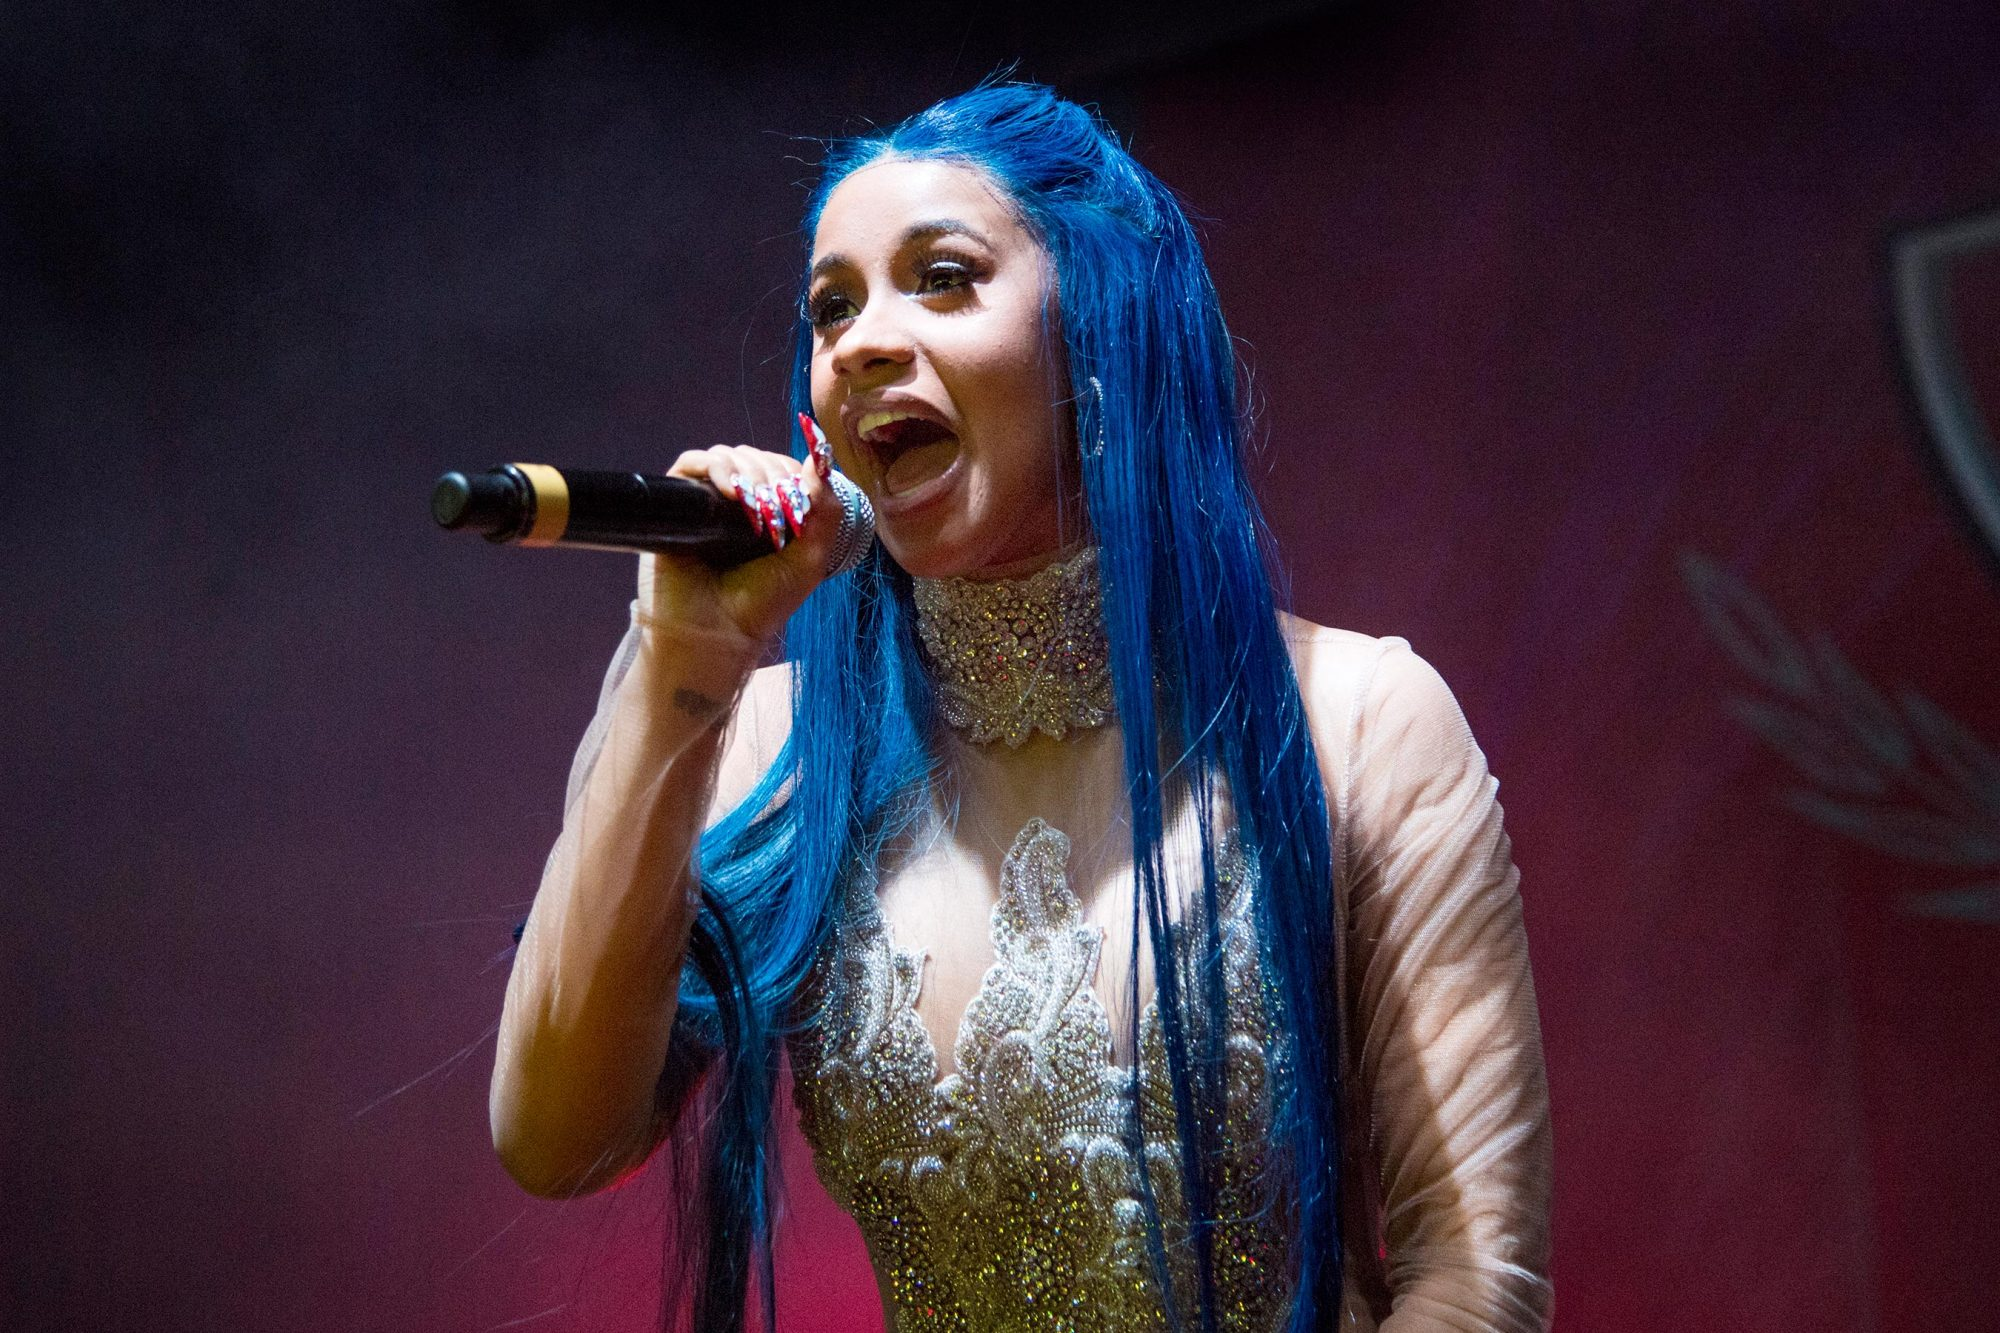 Cardi B And Machine Gun Kelly In Concert - New Orleans, Louisiana